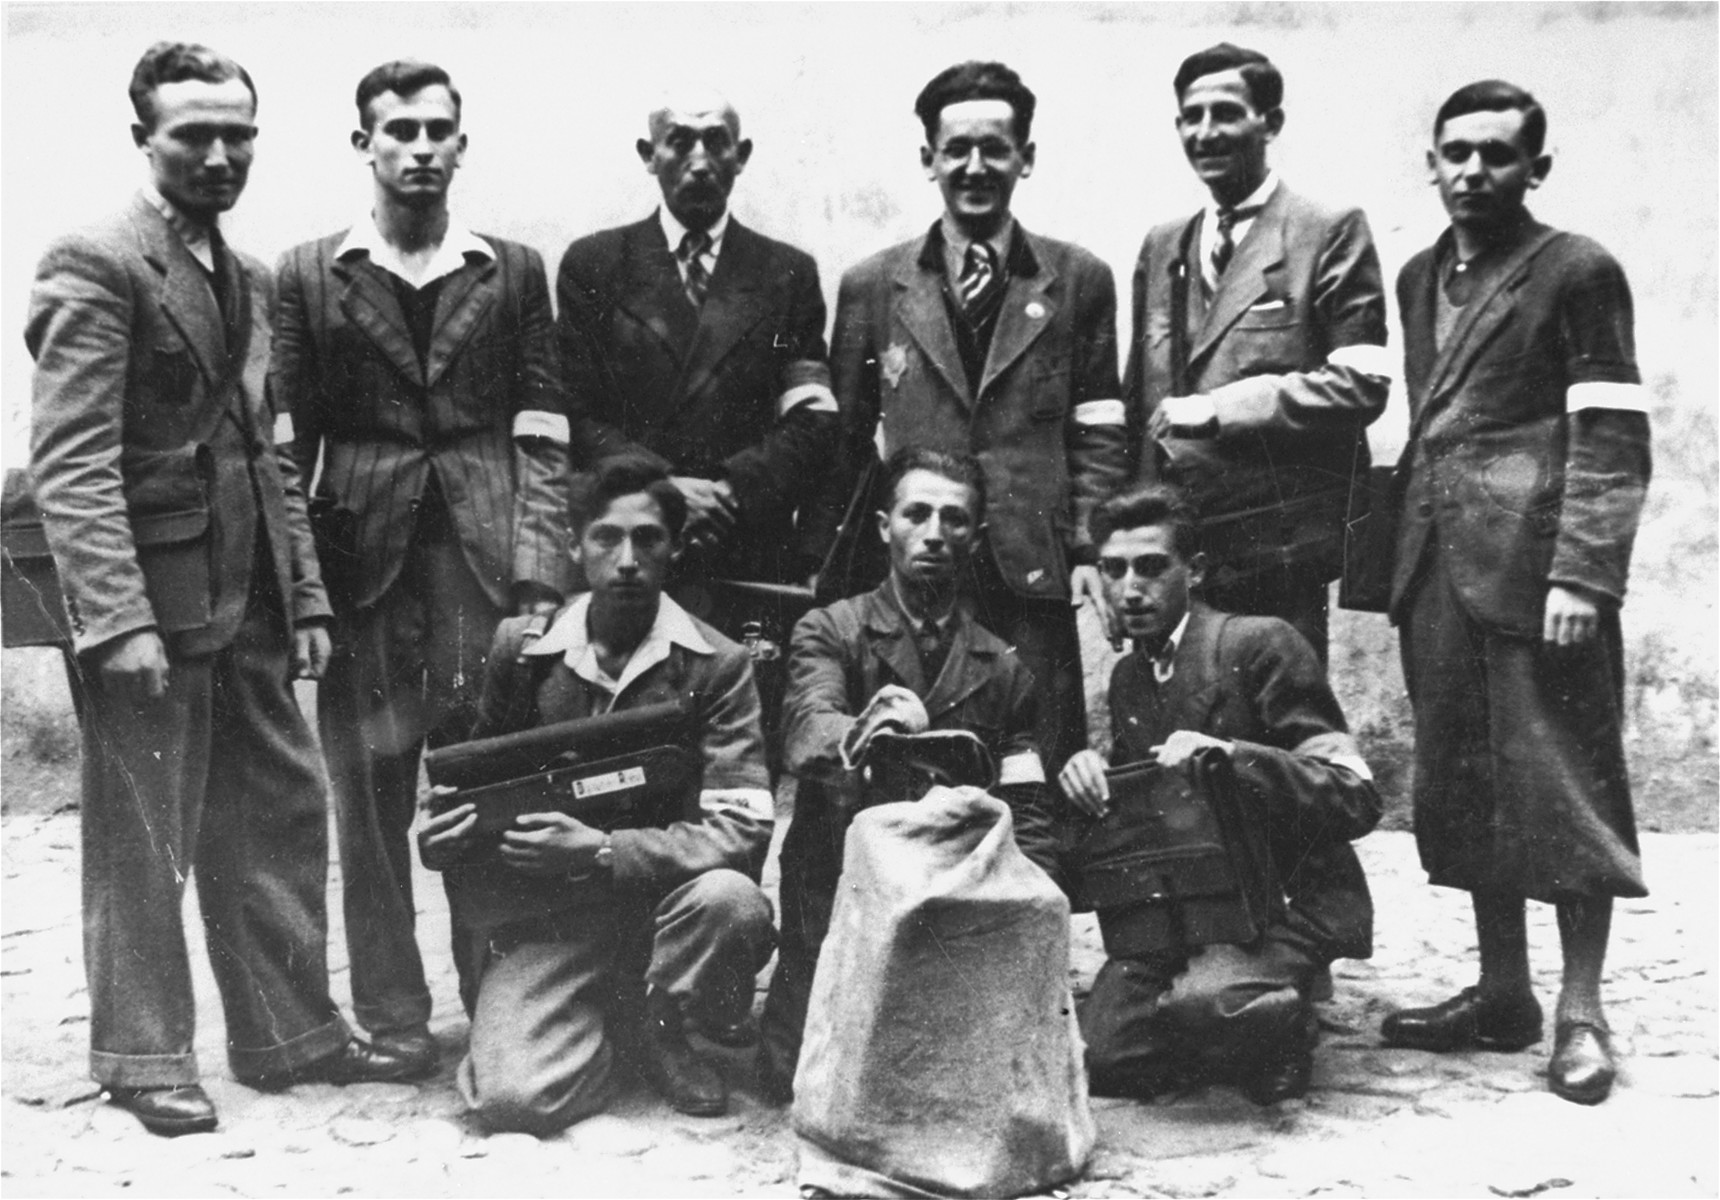 Group portrait of employees in the Lodz ghetto post office.    Among those pictured is Nachman Zonabend (standing second from the right).